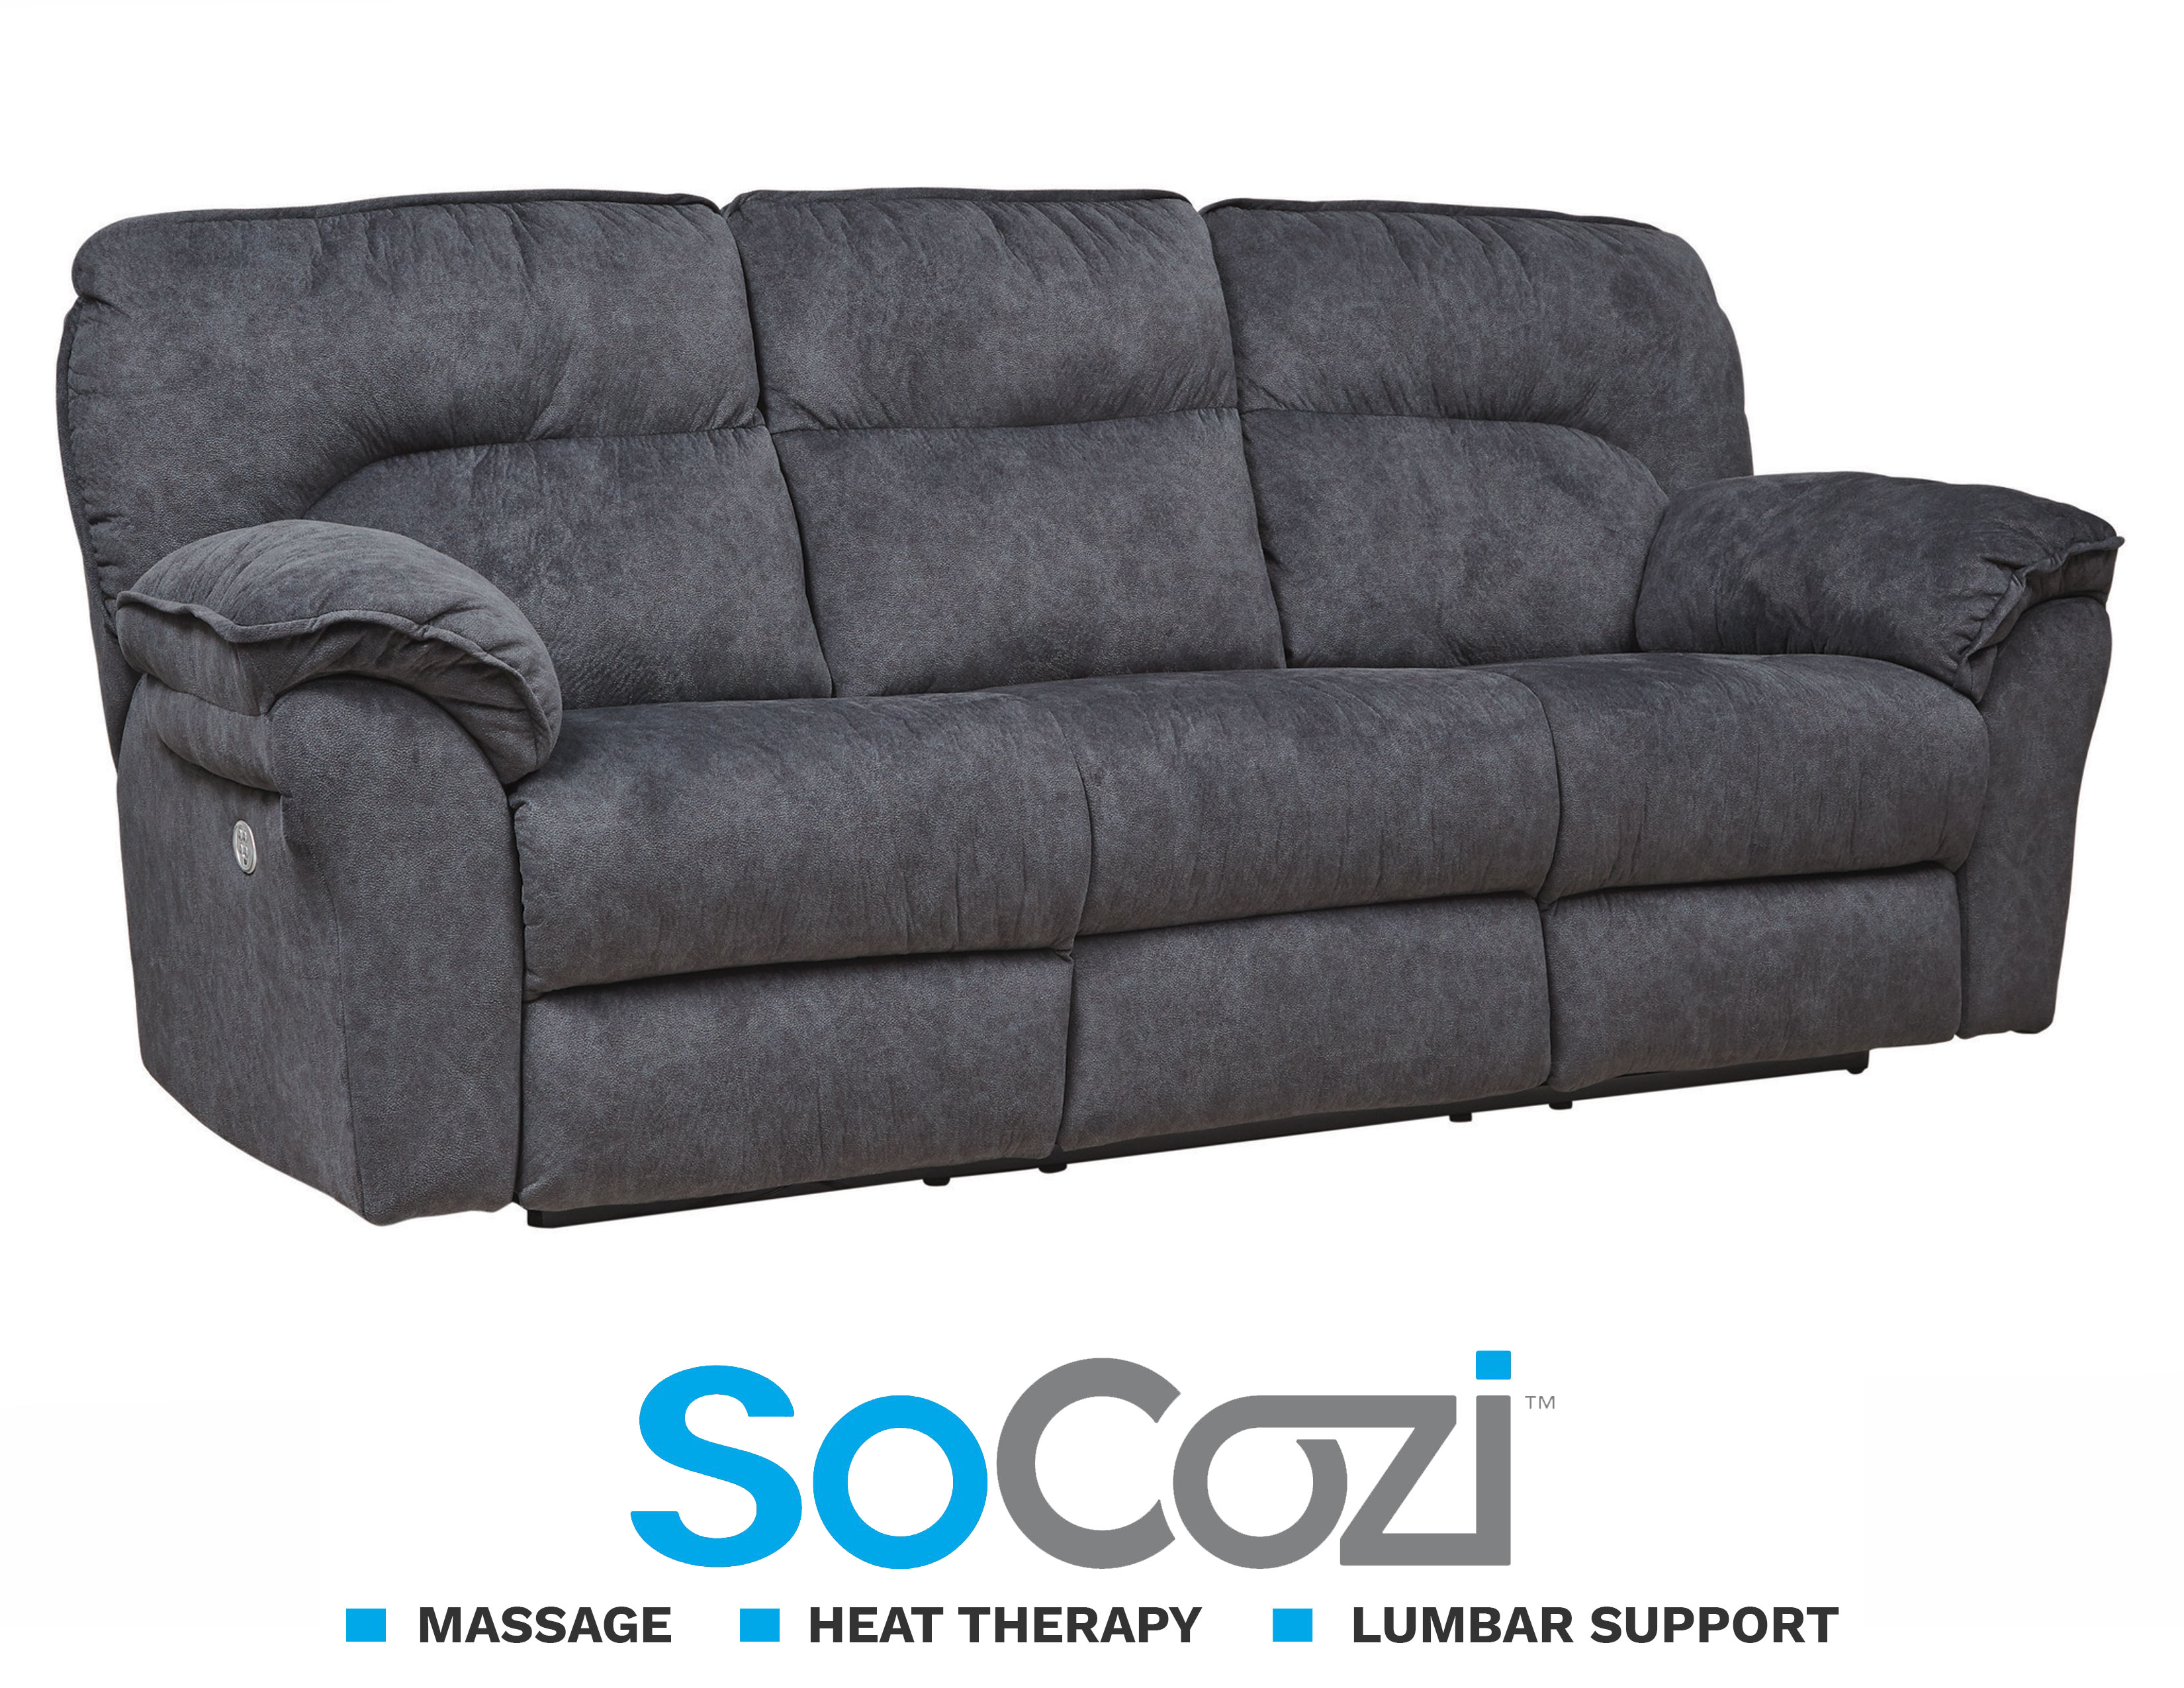 Surprising Full Ride Reclining Sofa W Massage Heat Sofas And Caraccident5 Cool Chair Designs And Ideas Caraccident5Info